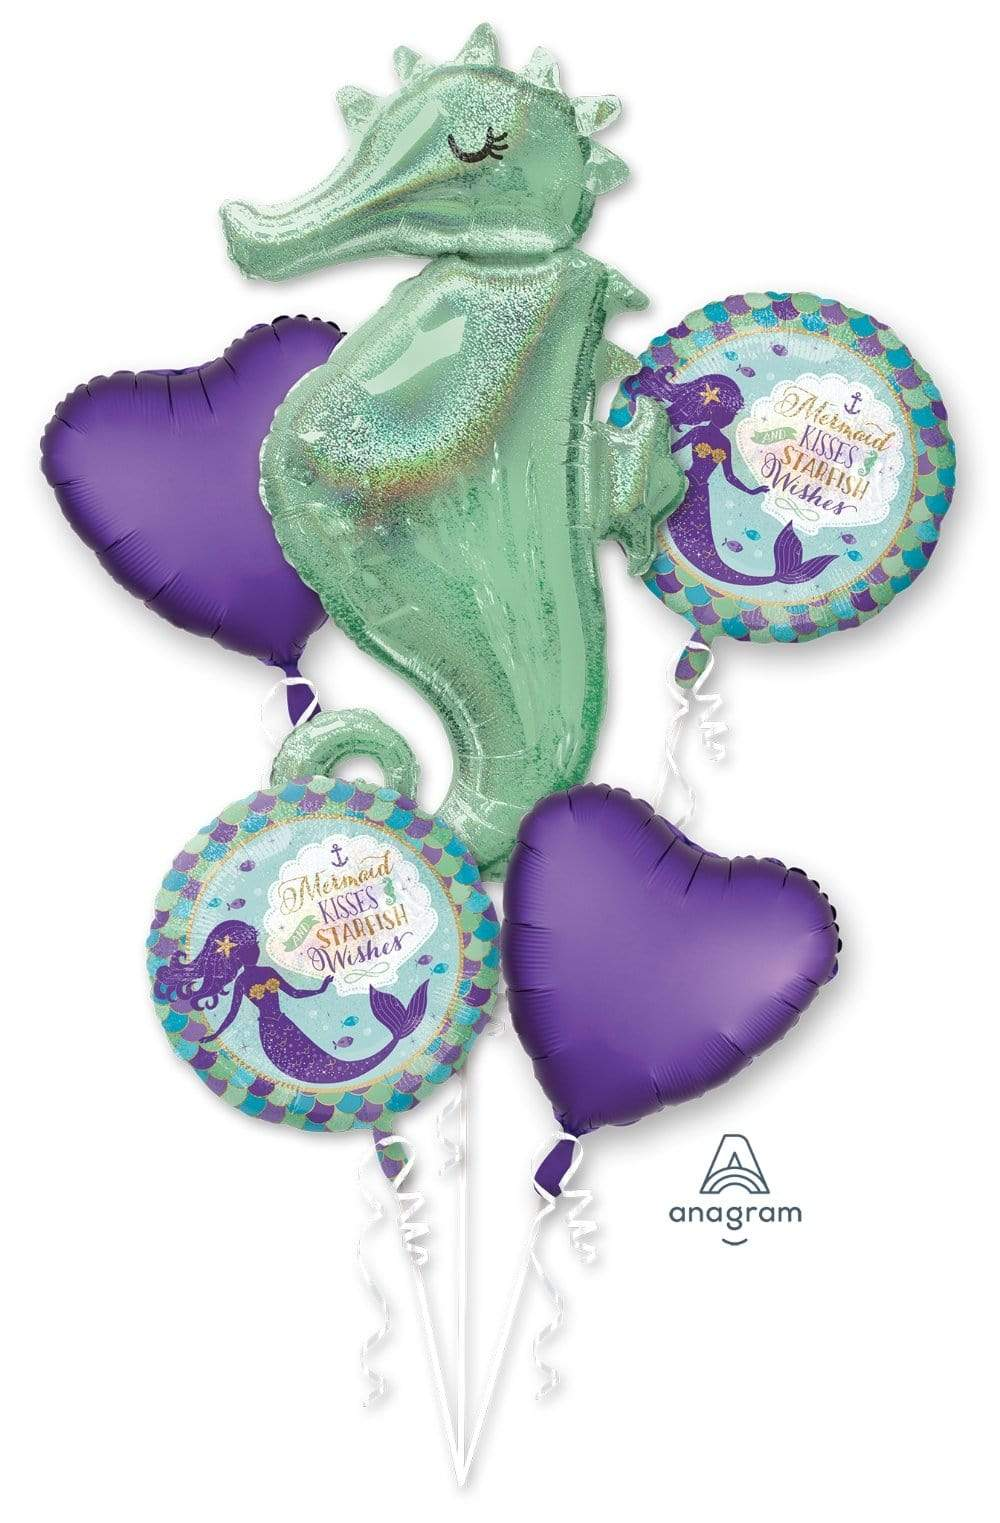 Mermaid Wishes Seahorse Balloon Bouquet Instaballoons